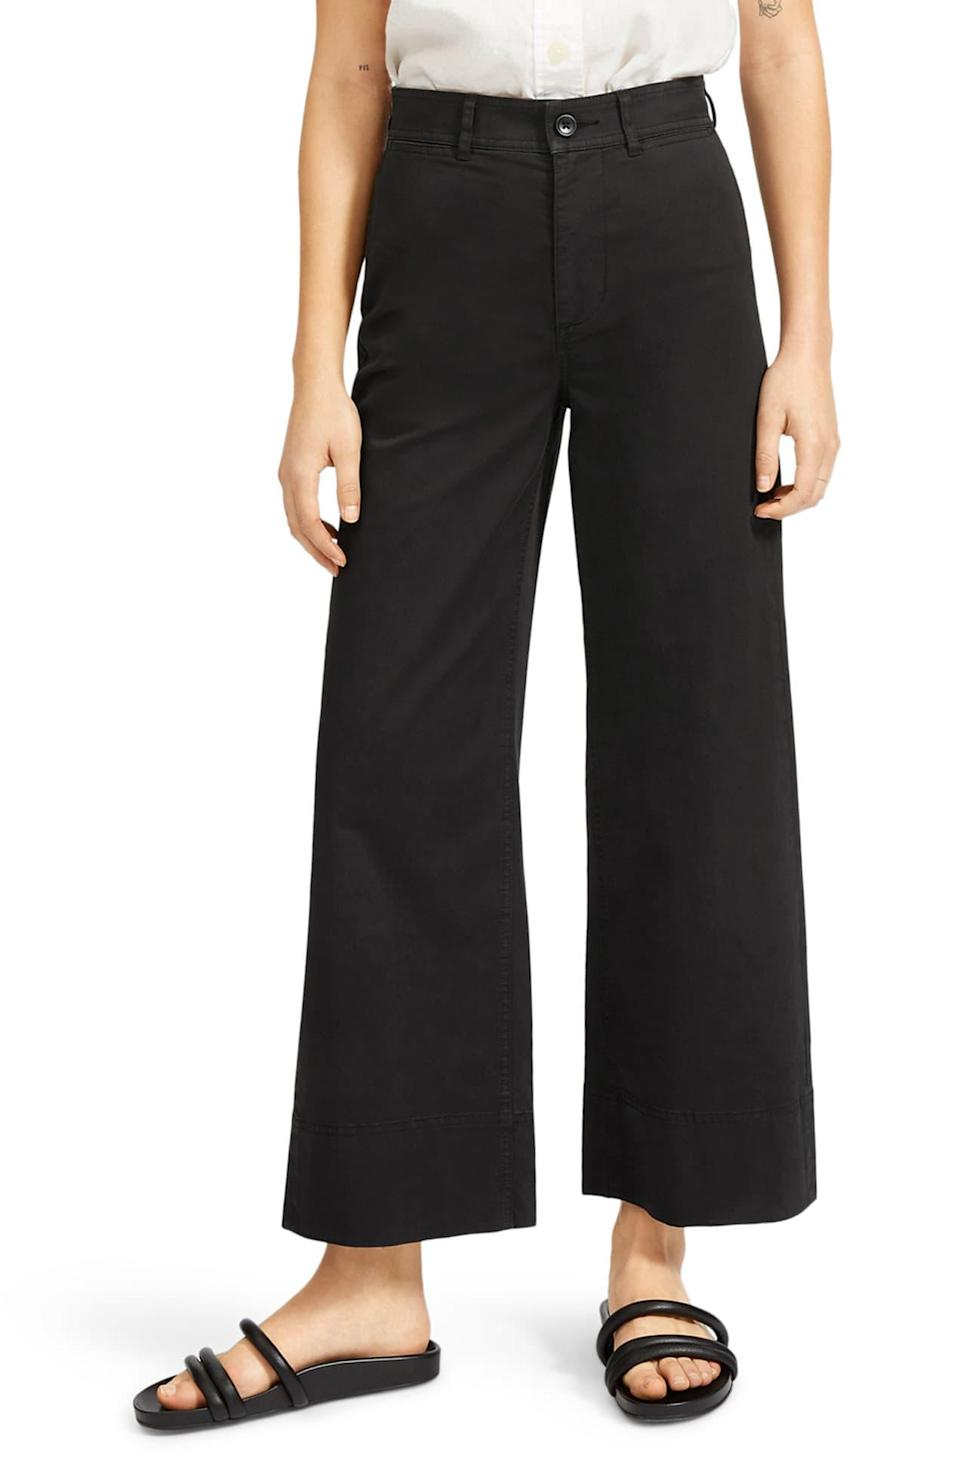 """<br><br><strong>Everlane</strong> The Lightweight Wide Leg Crop Chino Pants, $, available at <a href=""""https://go.skimresources.com/?id=30283X879131&url=https%3A%2F%2Fwww.nordstromrack.com%2Fs%2Feverlane-the-lightweight-wide-leg-crop-chino-pants%2Fn3236239"""" rel=""""nofollow noopener"""" target=""""_blank"""" data-ylk=""""slk:Nordstrom Rack"""" class=""""link rapid-noclick-resp"""">Nordstrom Rack</a>"""